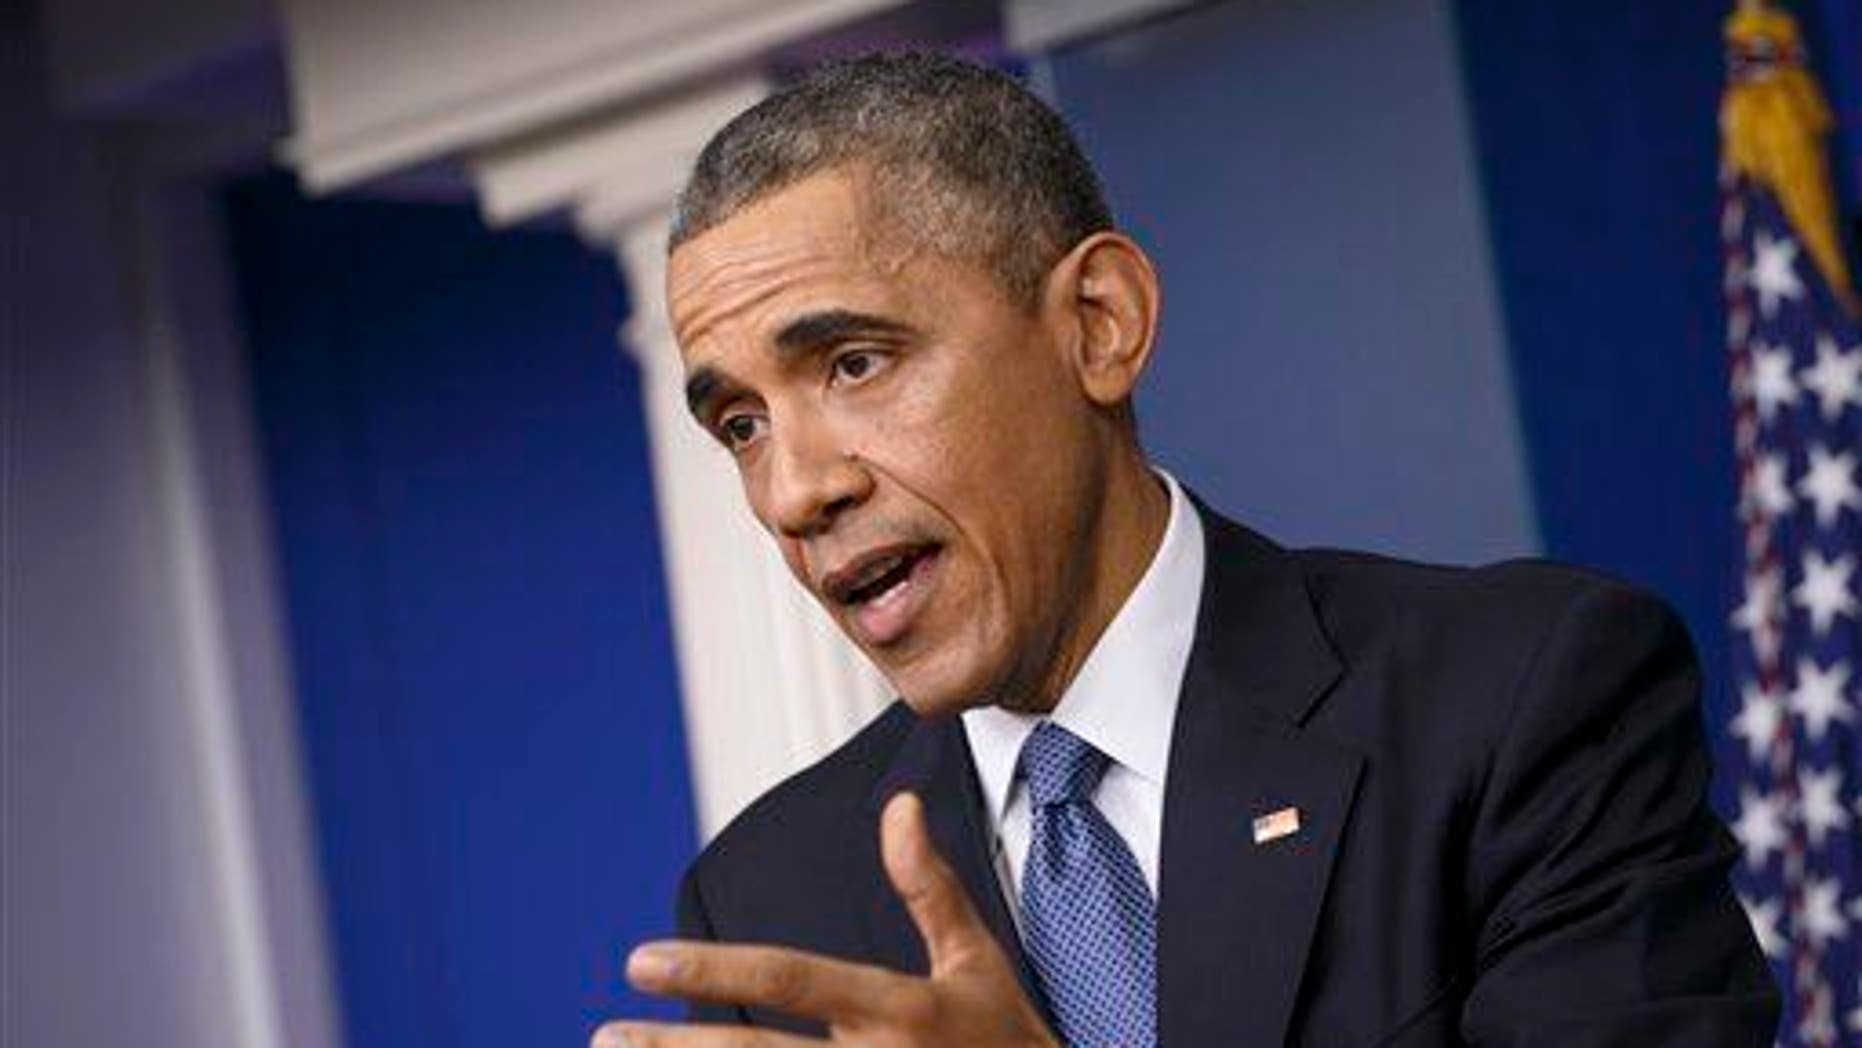 """President Barack Obama speaks during a news conference in the Brady Press Briefing Room of the White House in Washington, Friday, Dec. 19, 2014. When the leaders of the U.S. and Cuba had their first phone conversation in more than 50 years, they were not at a loss for words. As President Barack Obama told the story at his news conference Friday, he opened his call with Cuban President Raul Castro _ brother of famously longwinded Fidel _ with a 15-minute monologue, then apologized for taking so much time. """"He said, 'Don't worry about it, Mr. President,'"""" Obama related. """"'You're still a young man, and you have still the chance to break Fidel's record. He once spoke seven hours straight."""" (AP Photo/J. Scott Applewhite)"""